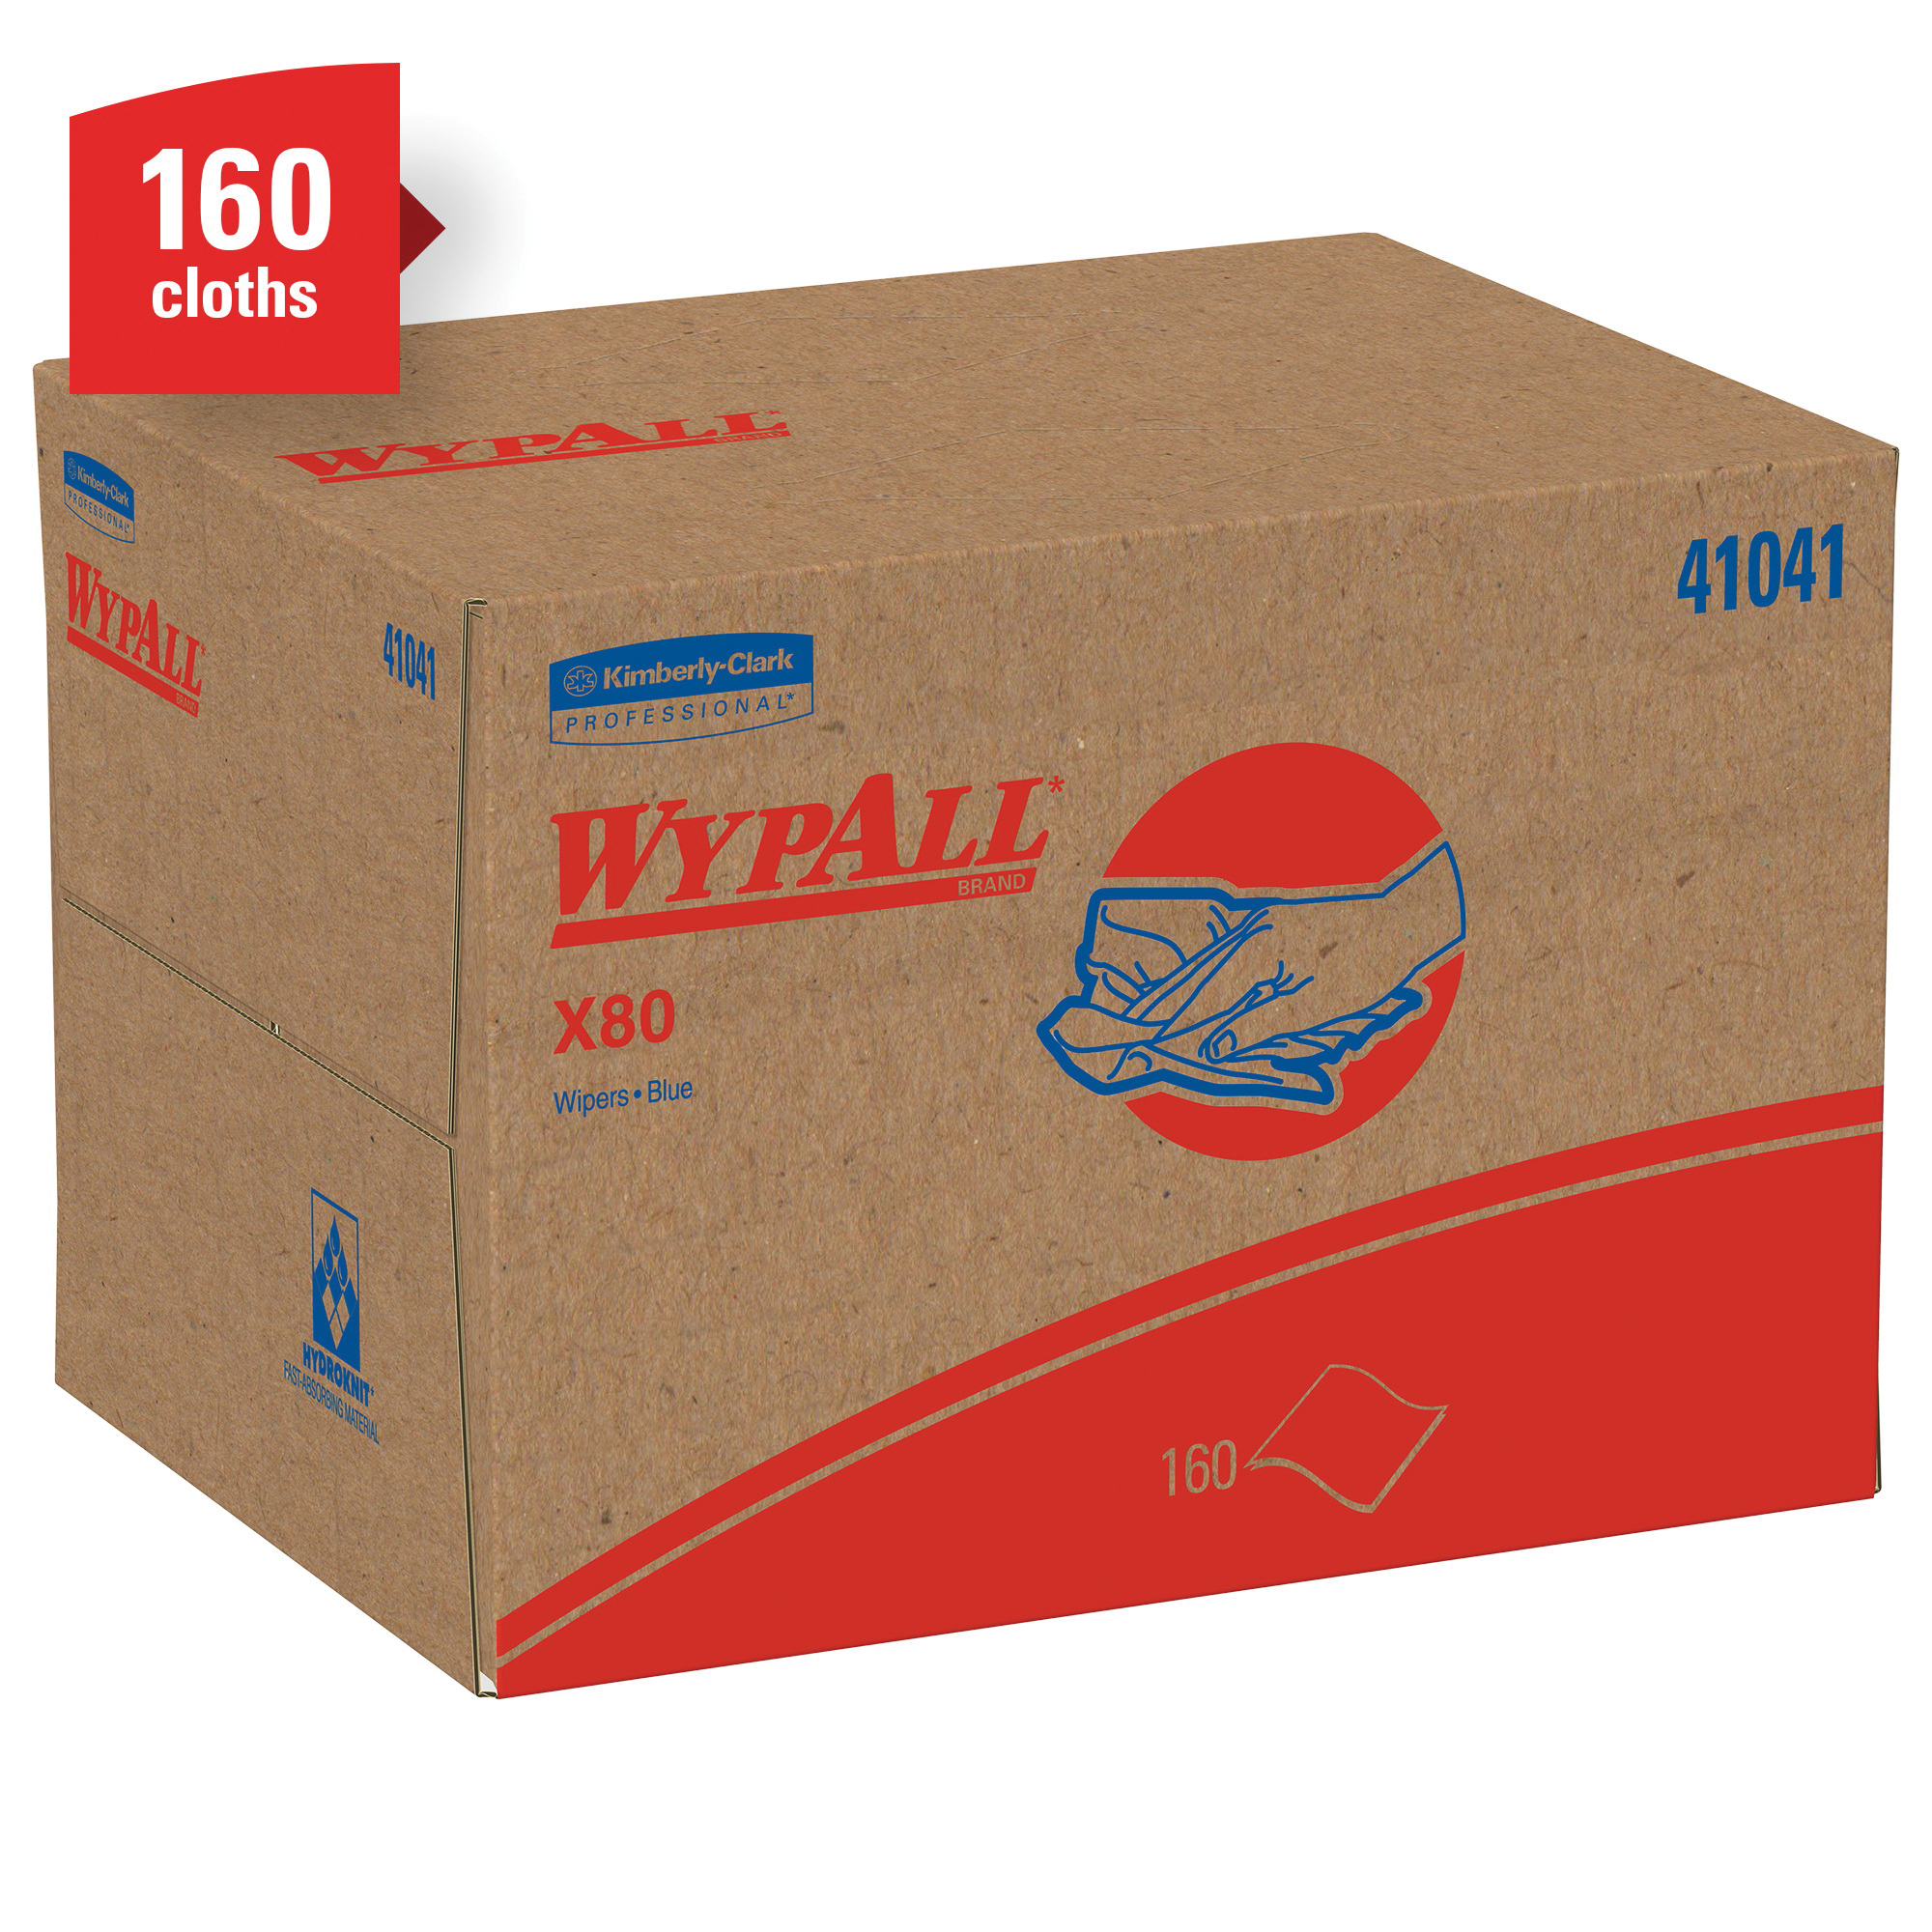 WypAll* 41029 X80 Disposable Wiper, Hydroknit*, Red